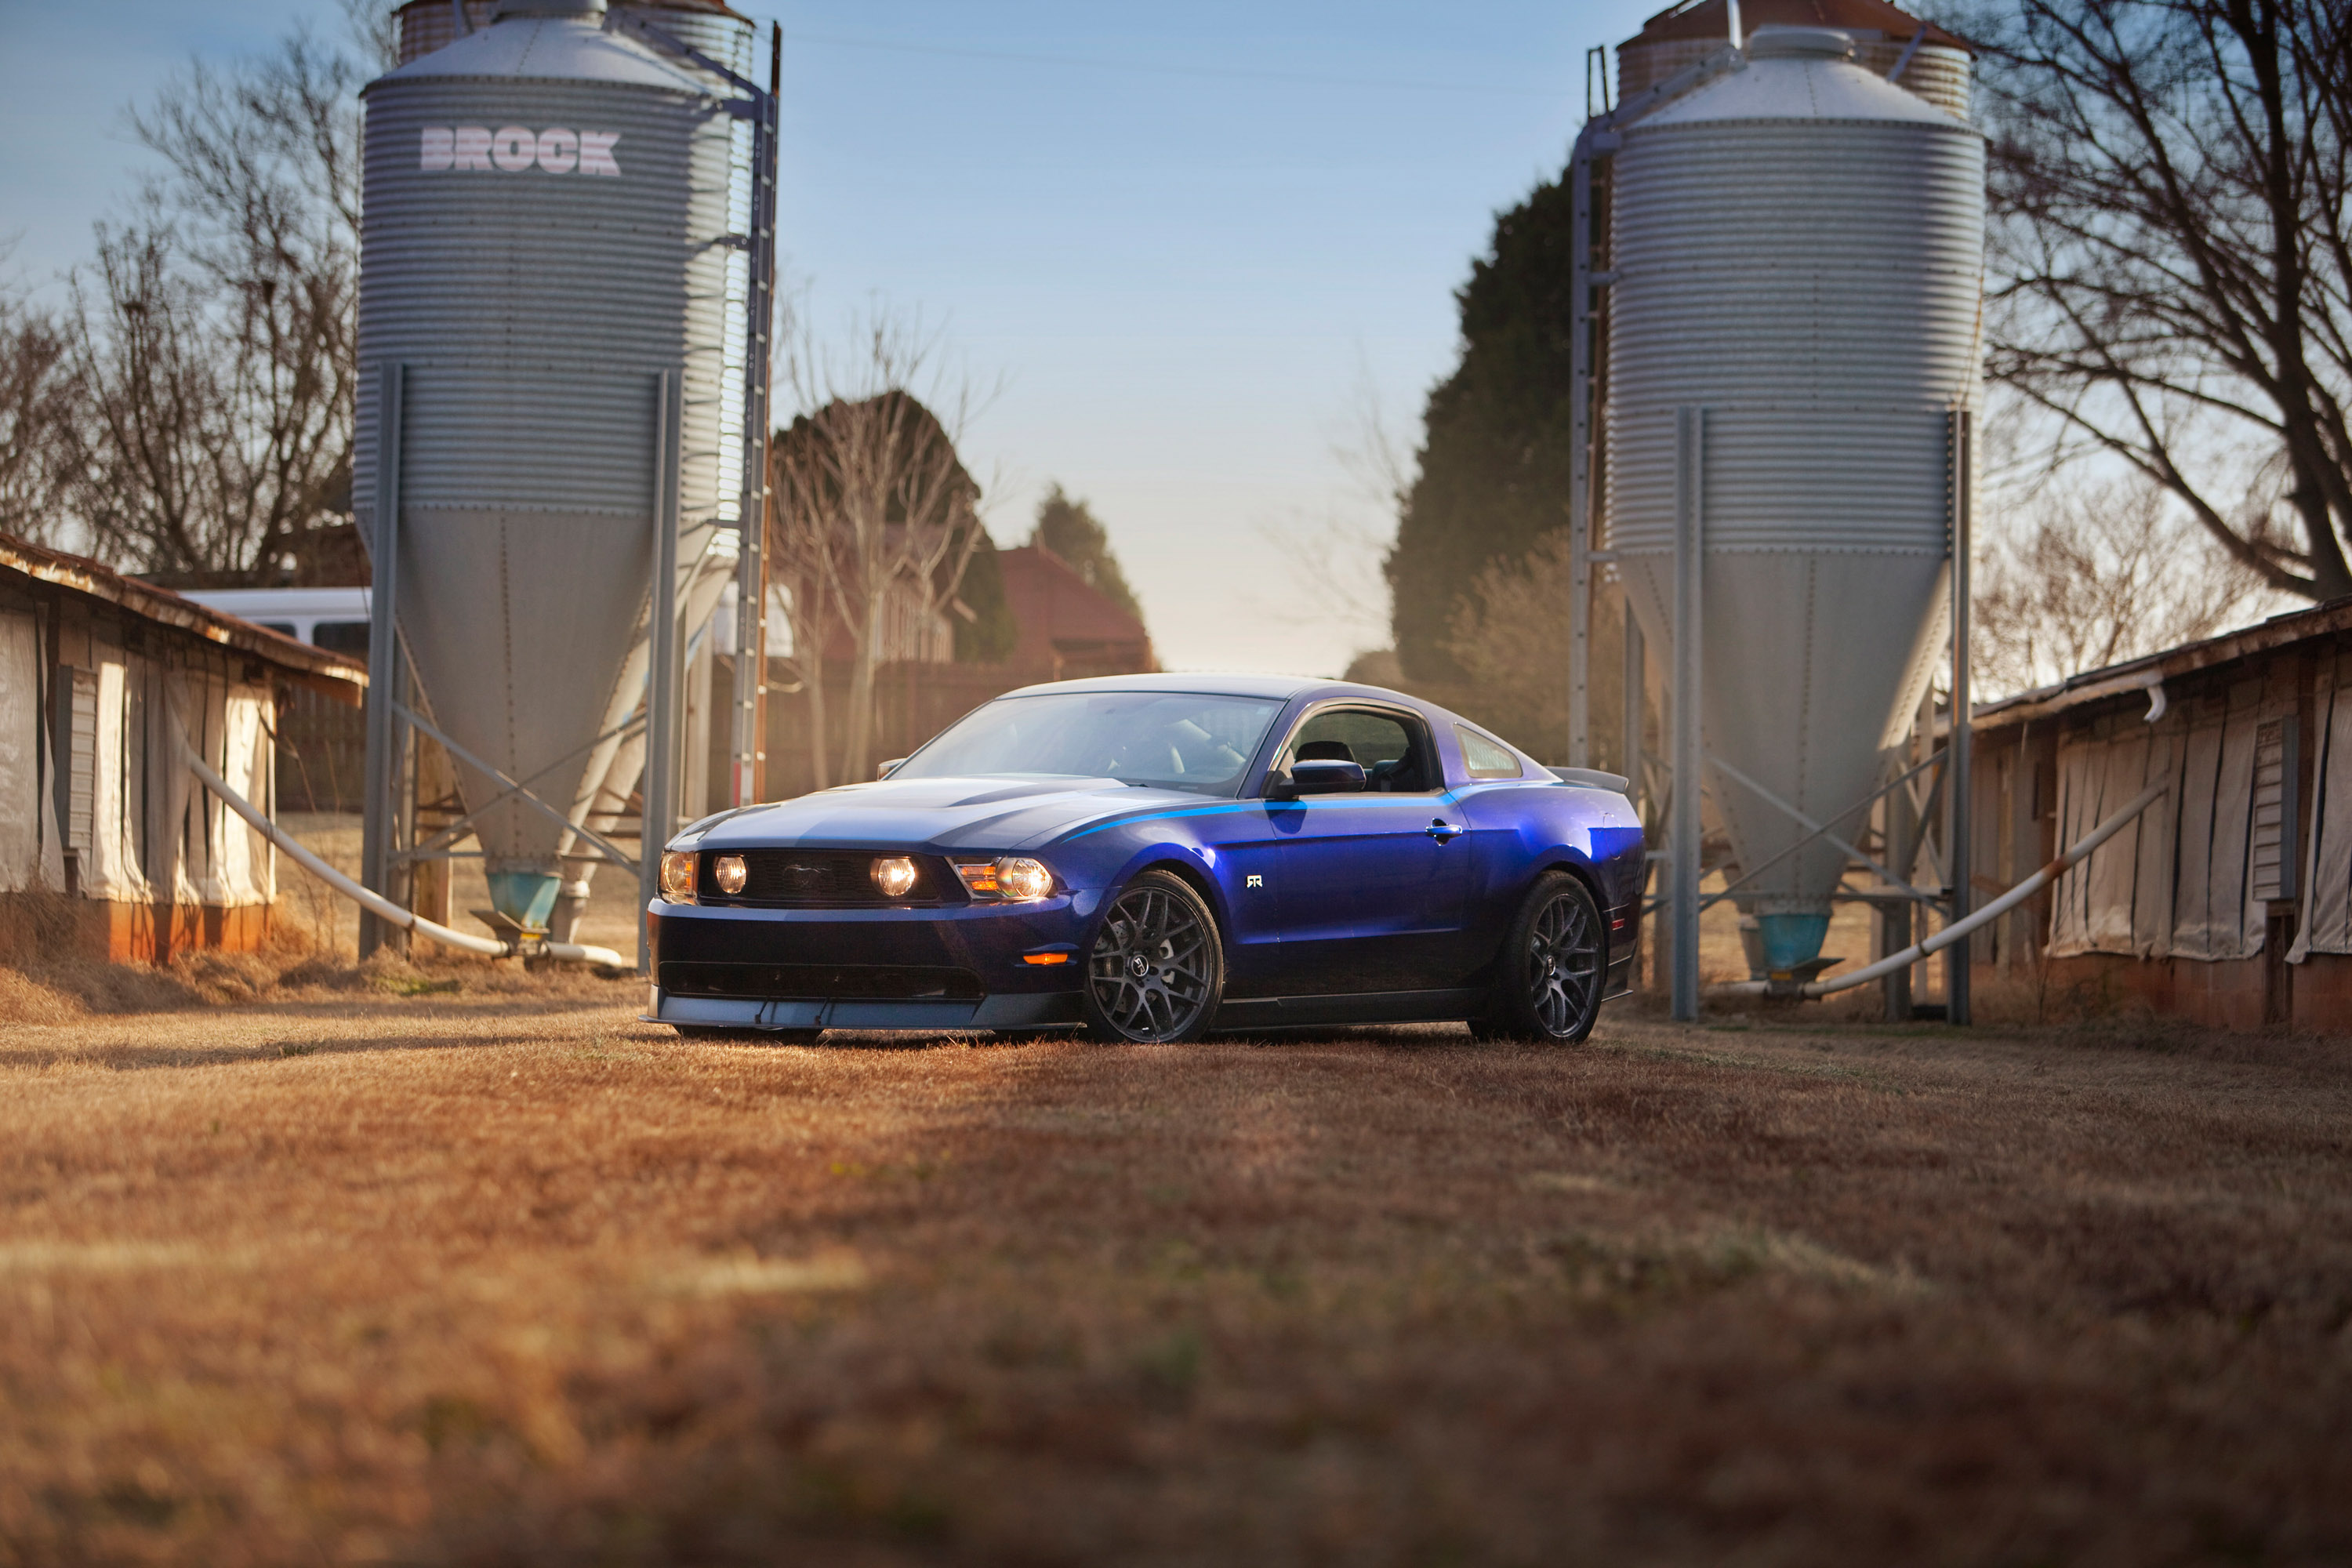 2011 Ford Mustang Rtr The High End Drift Machine